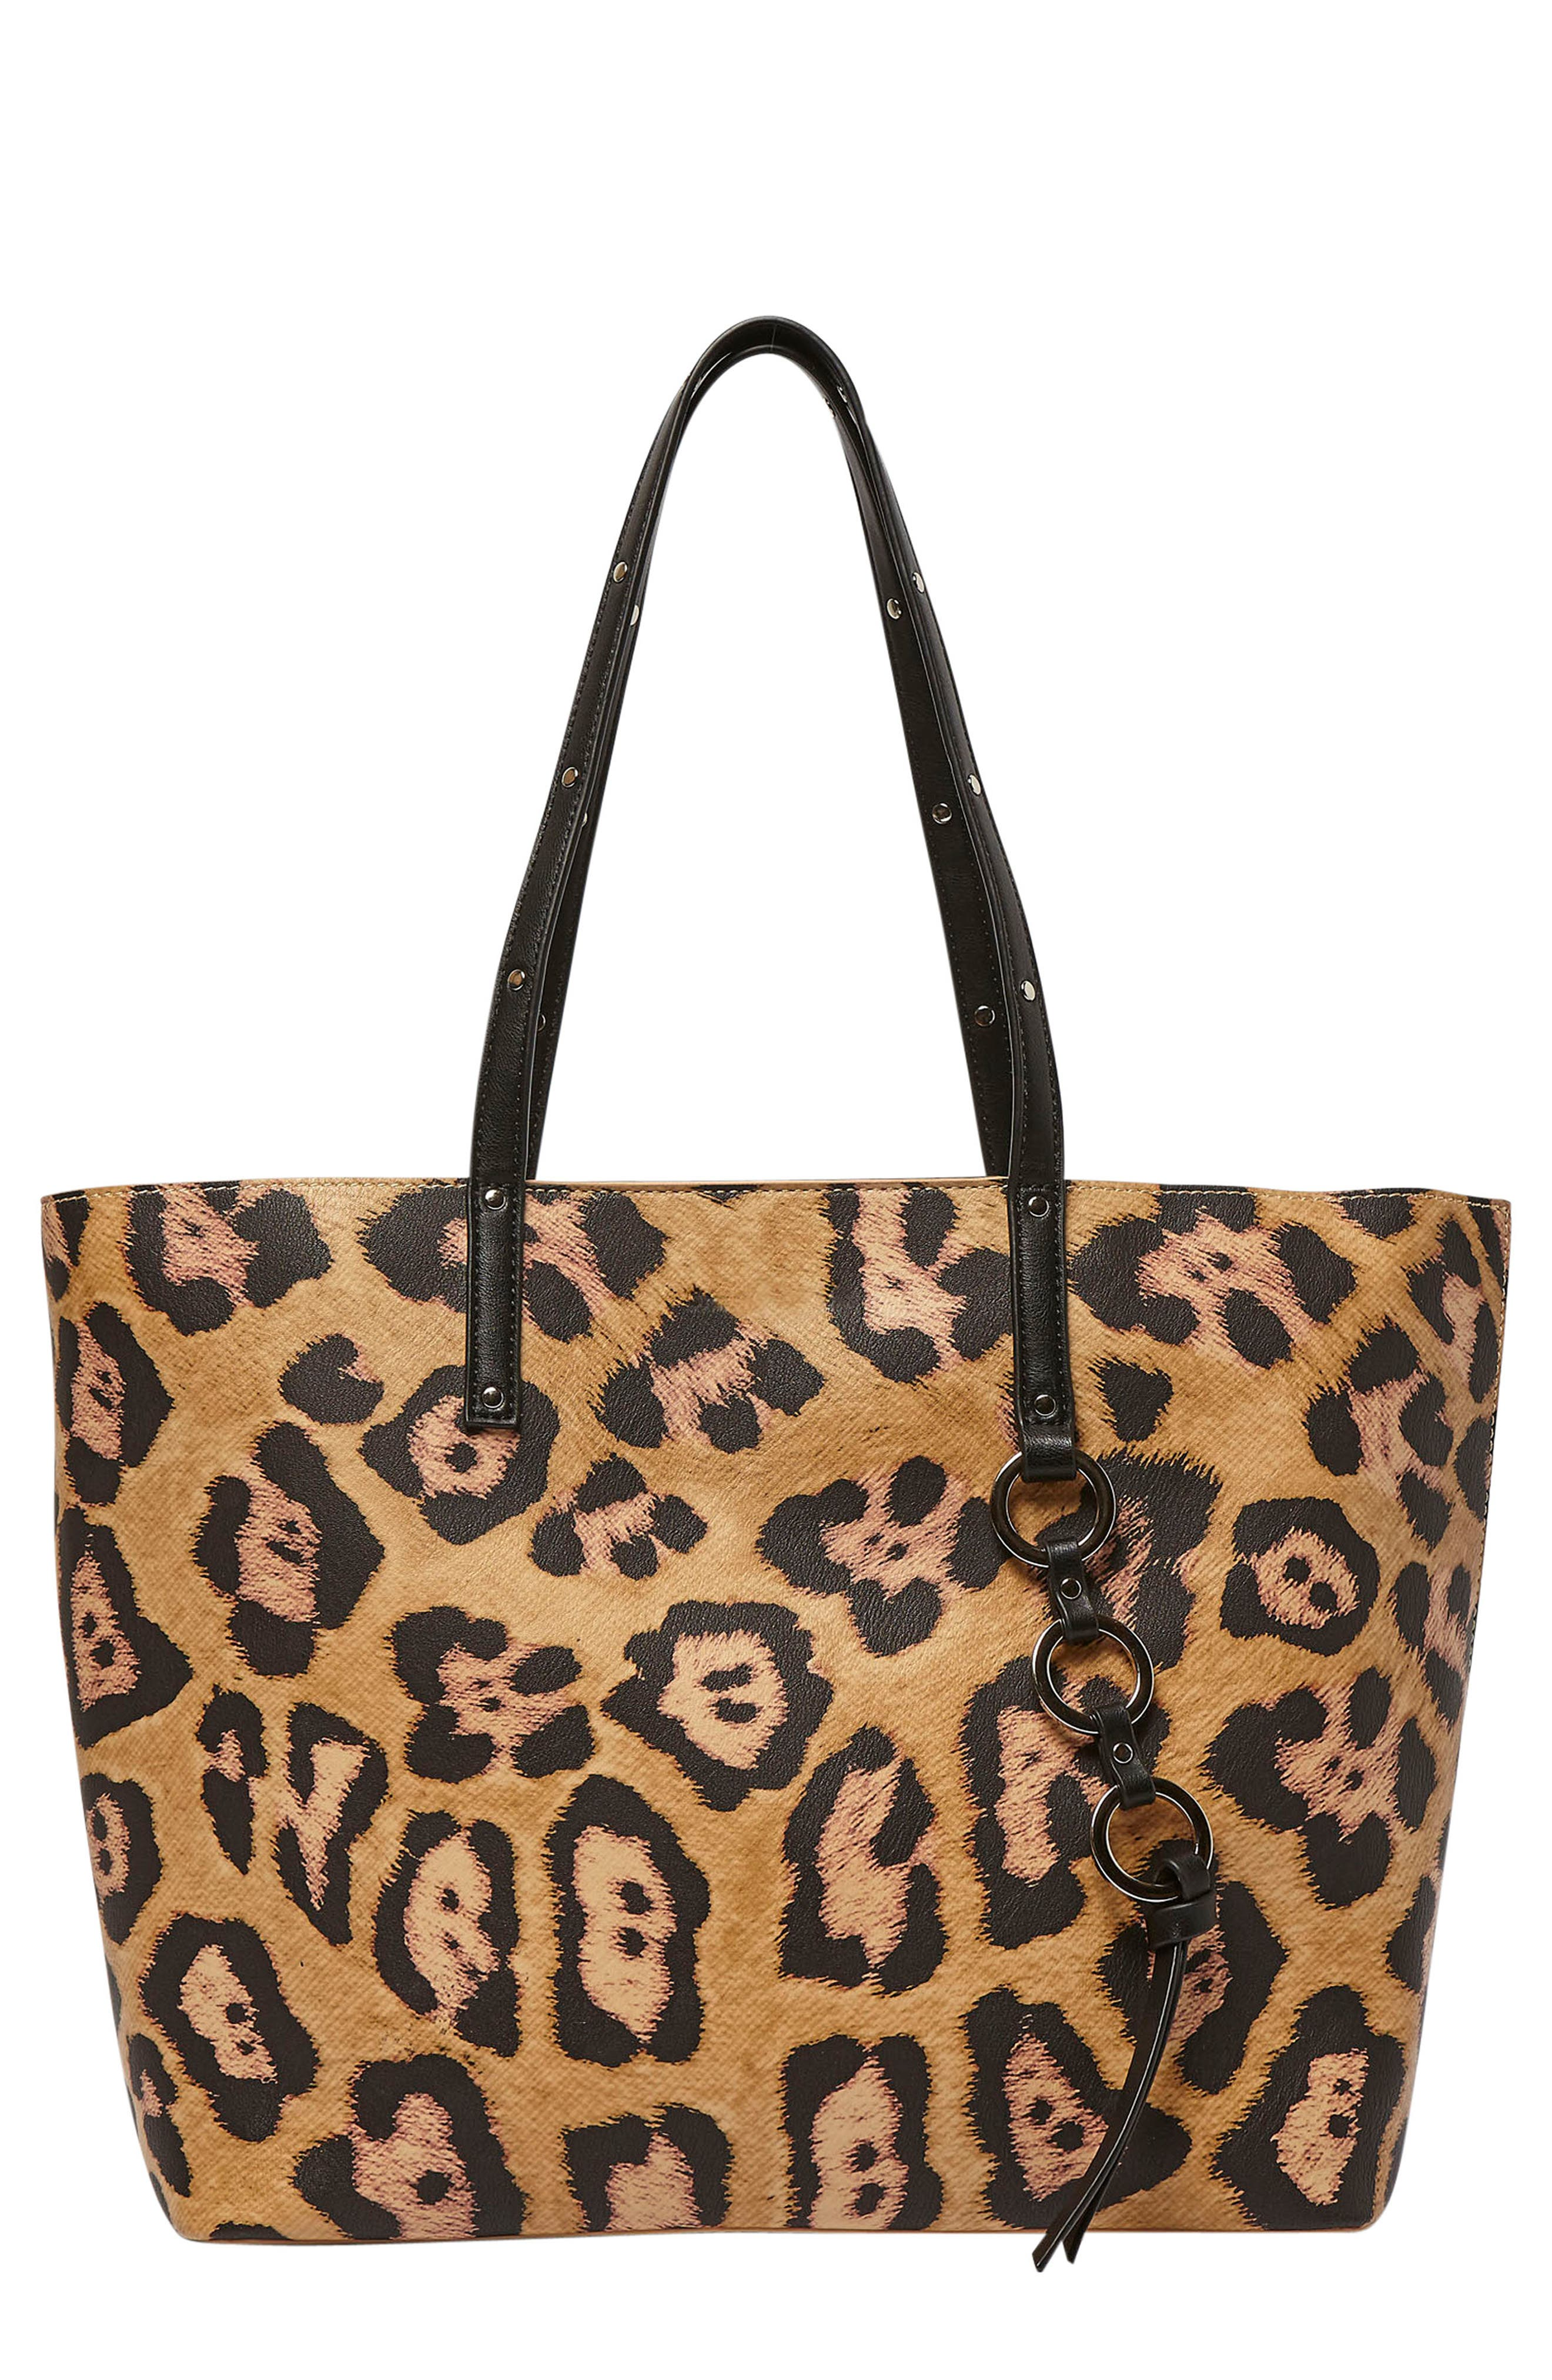 Wild Fire Vegan Leather Tote,                             Main thumbnail 4, color,